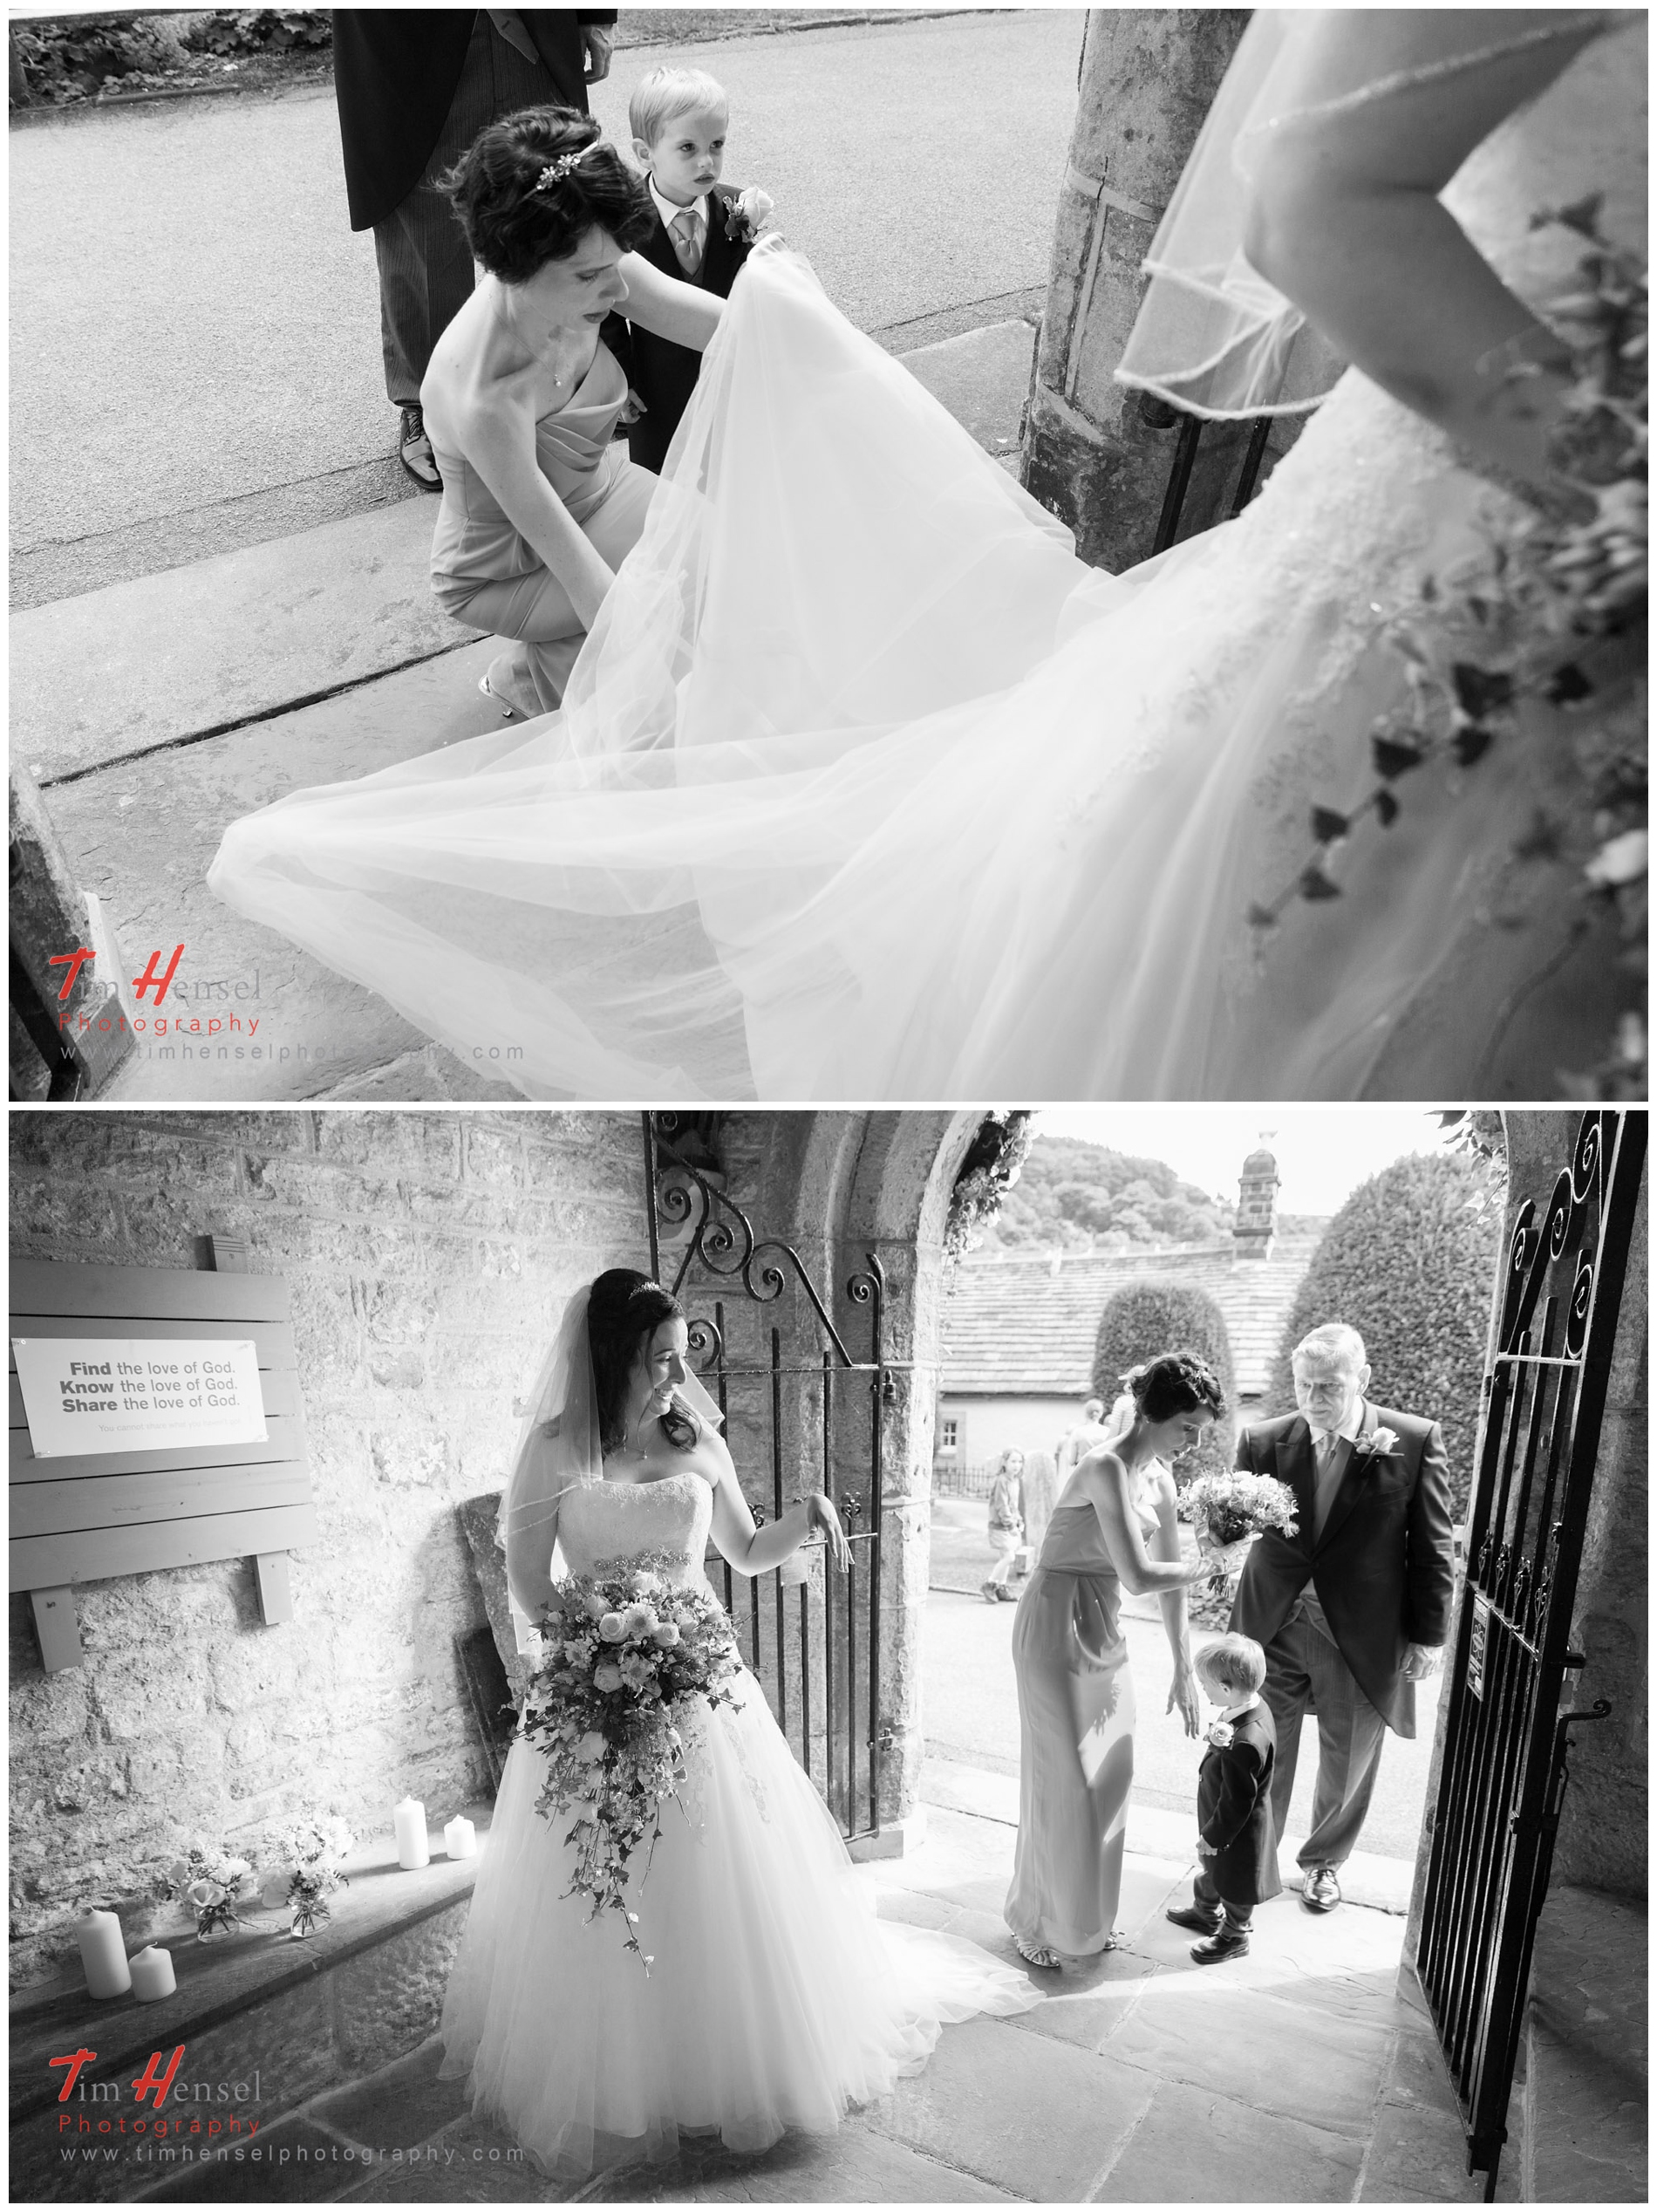 wedding photography in derbyshire - the bride just before going into st michael & all angels church, hathersage